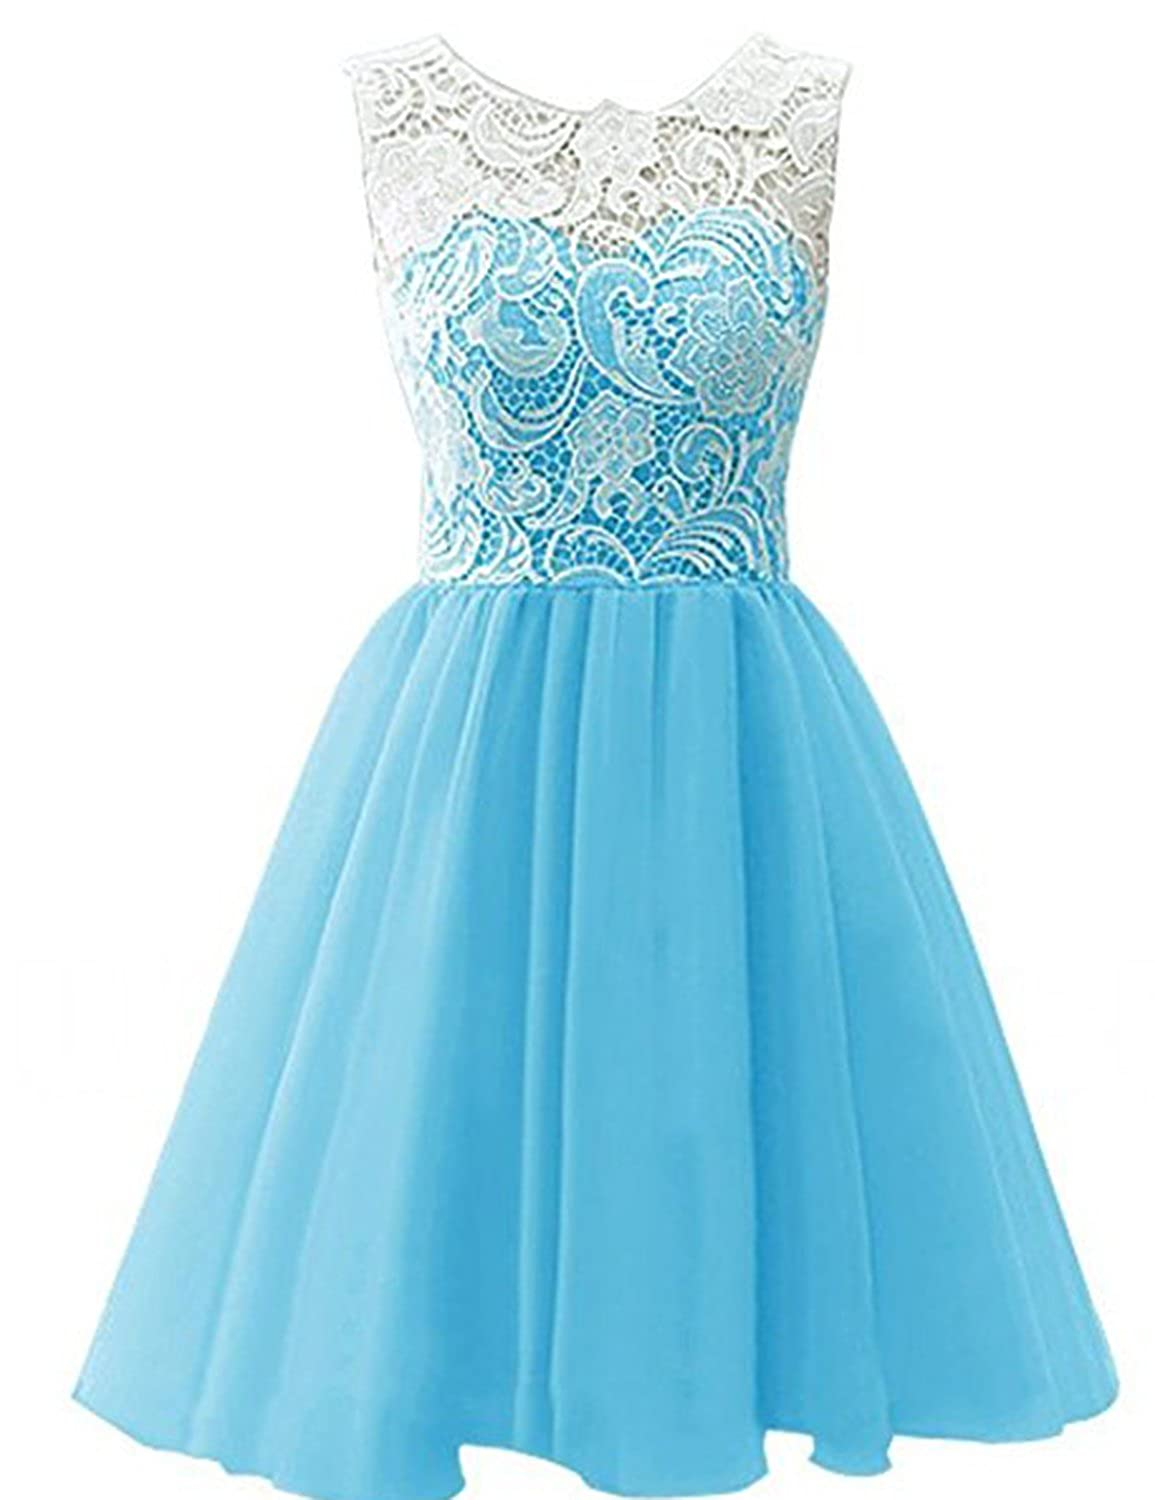 bluee YIRENWANSHA 2018 Short Homecoming Dress for Women Manual Lace Knee Length Formal Prom Gown YJW5